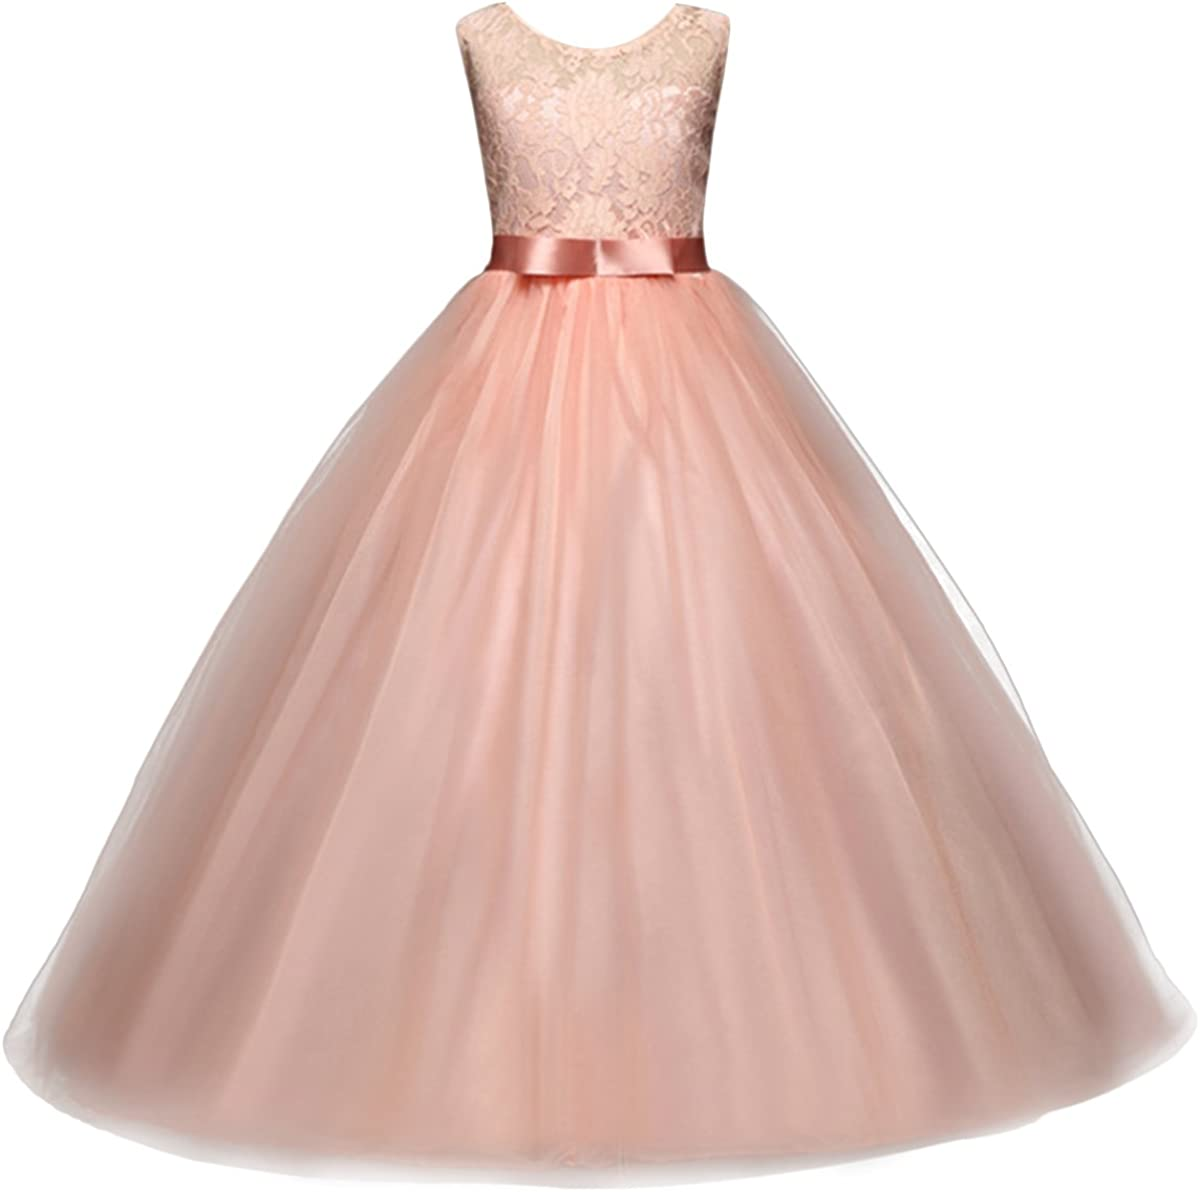 Big Girl Flower Lace Princess Store Tulle For Long Kids Prom for 4 years warranty Dress